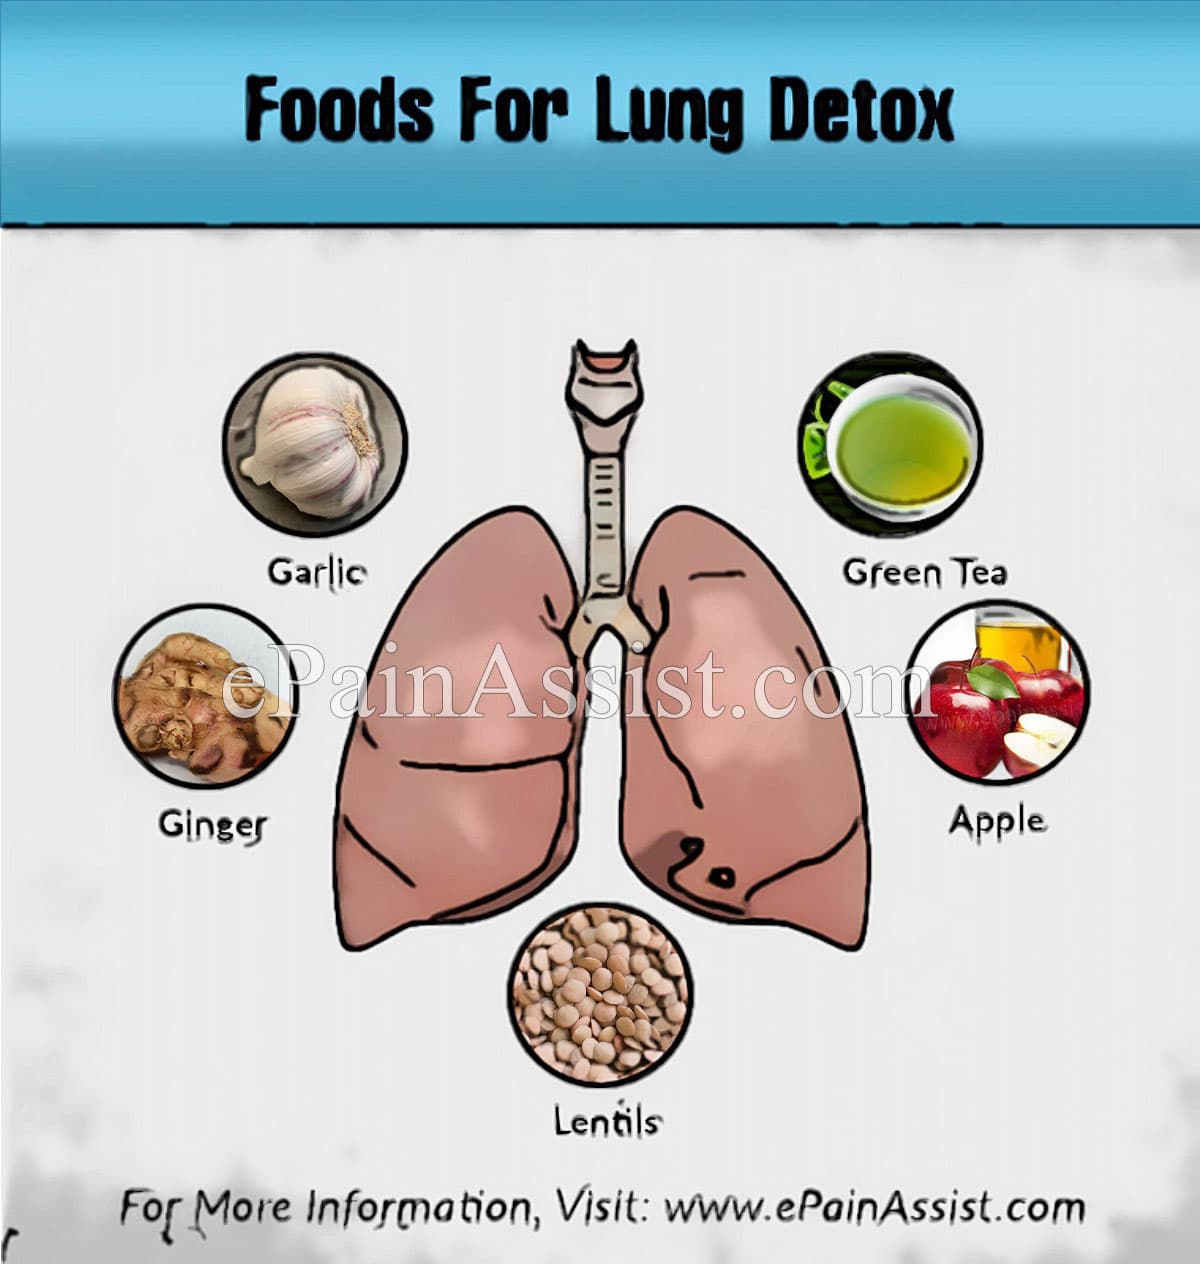 Foods for Lung Detox